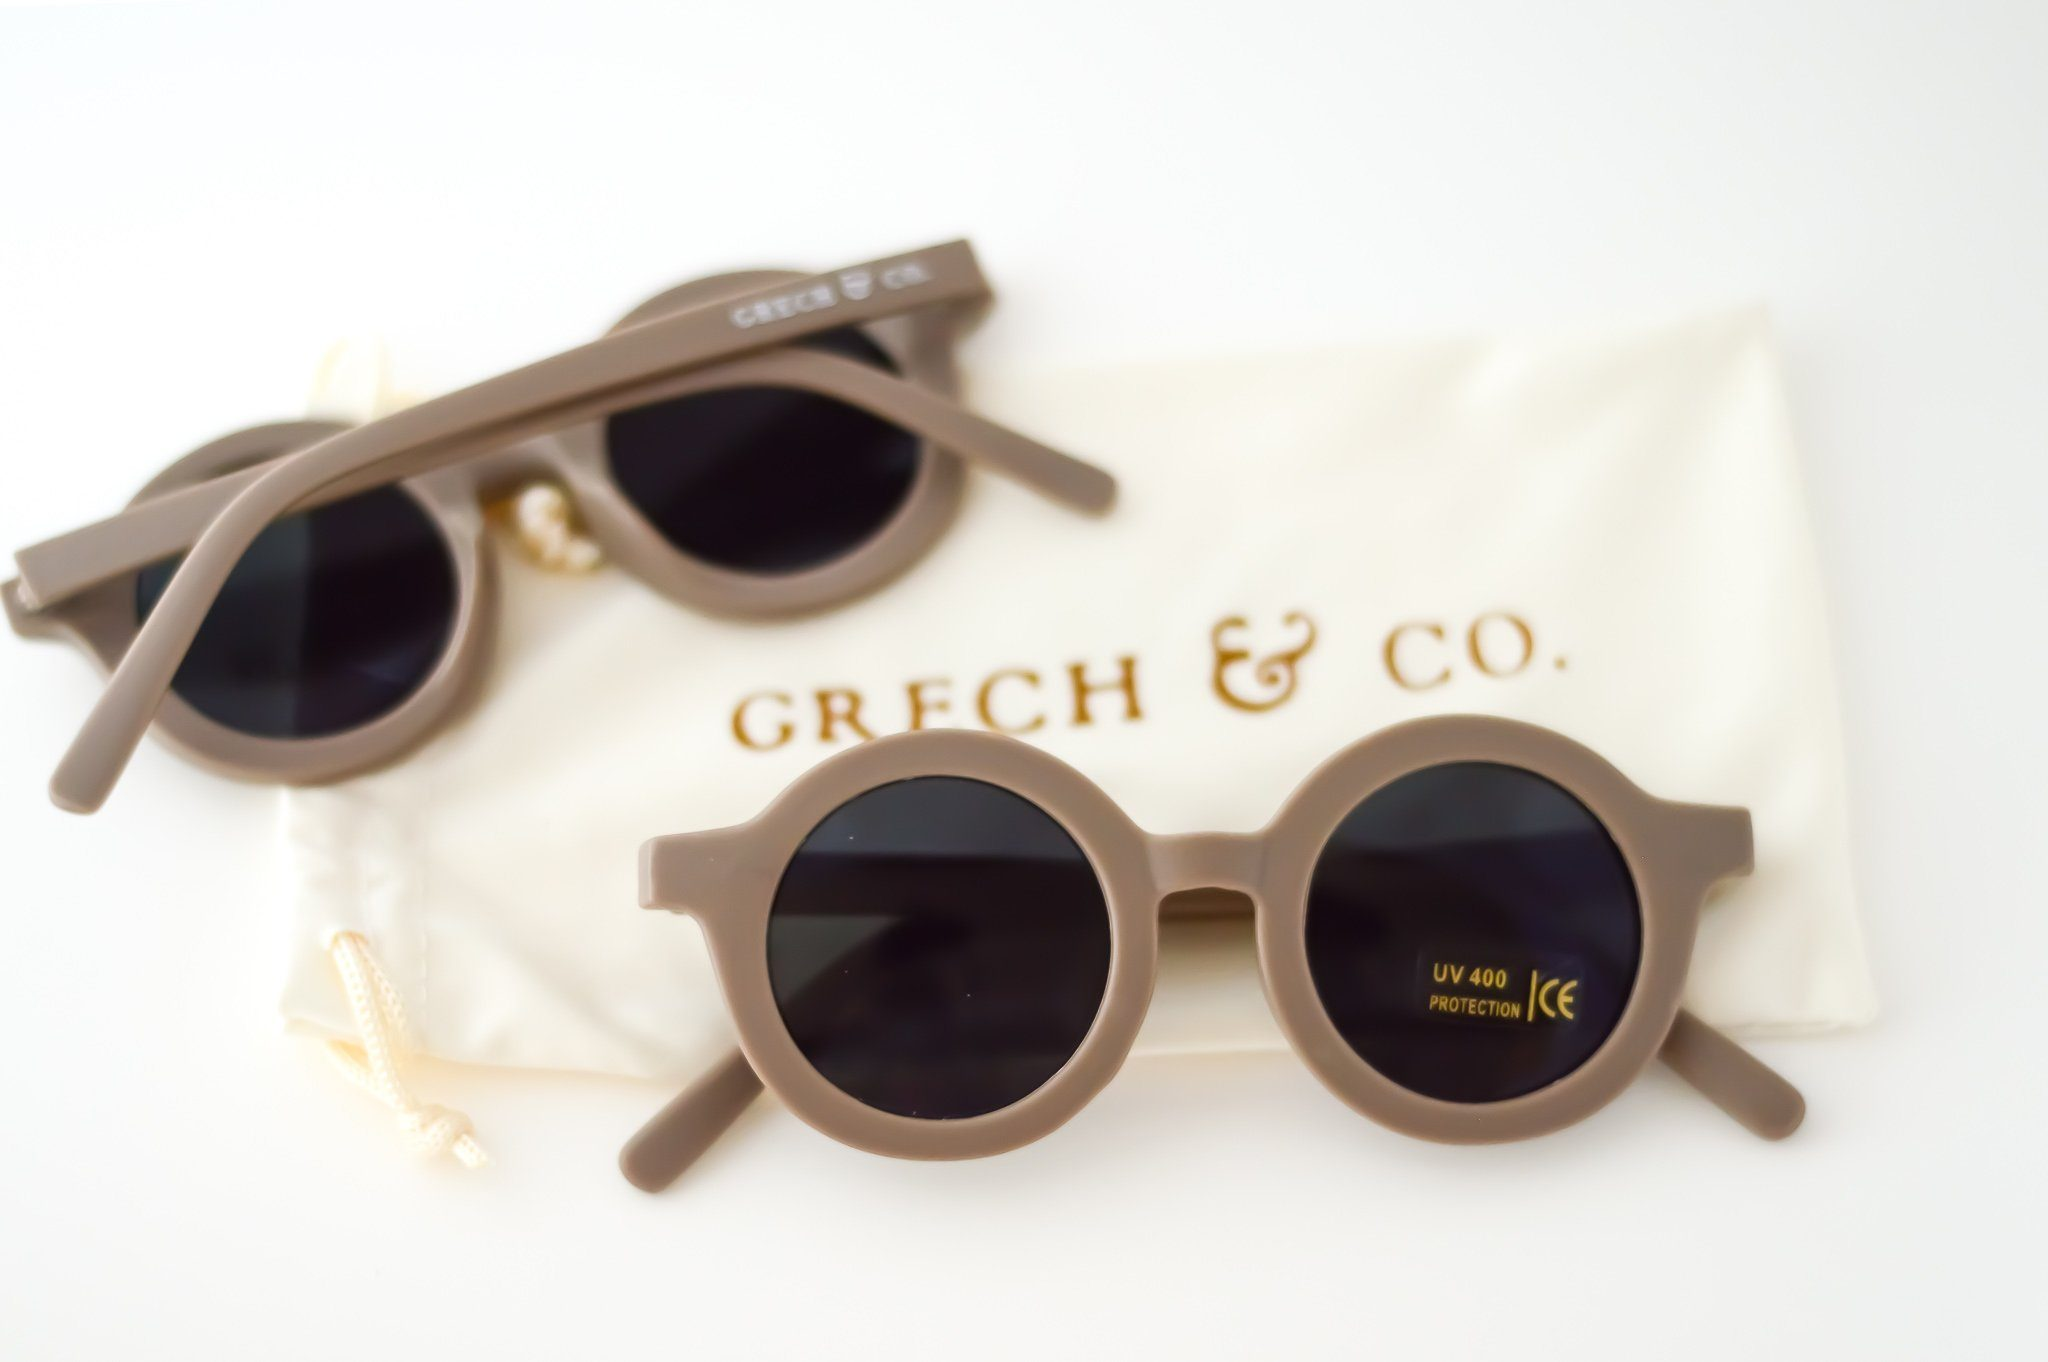 Grech and Co - Sustainable Kids Sunglasses - Stone Girls Grech and Co.